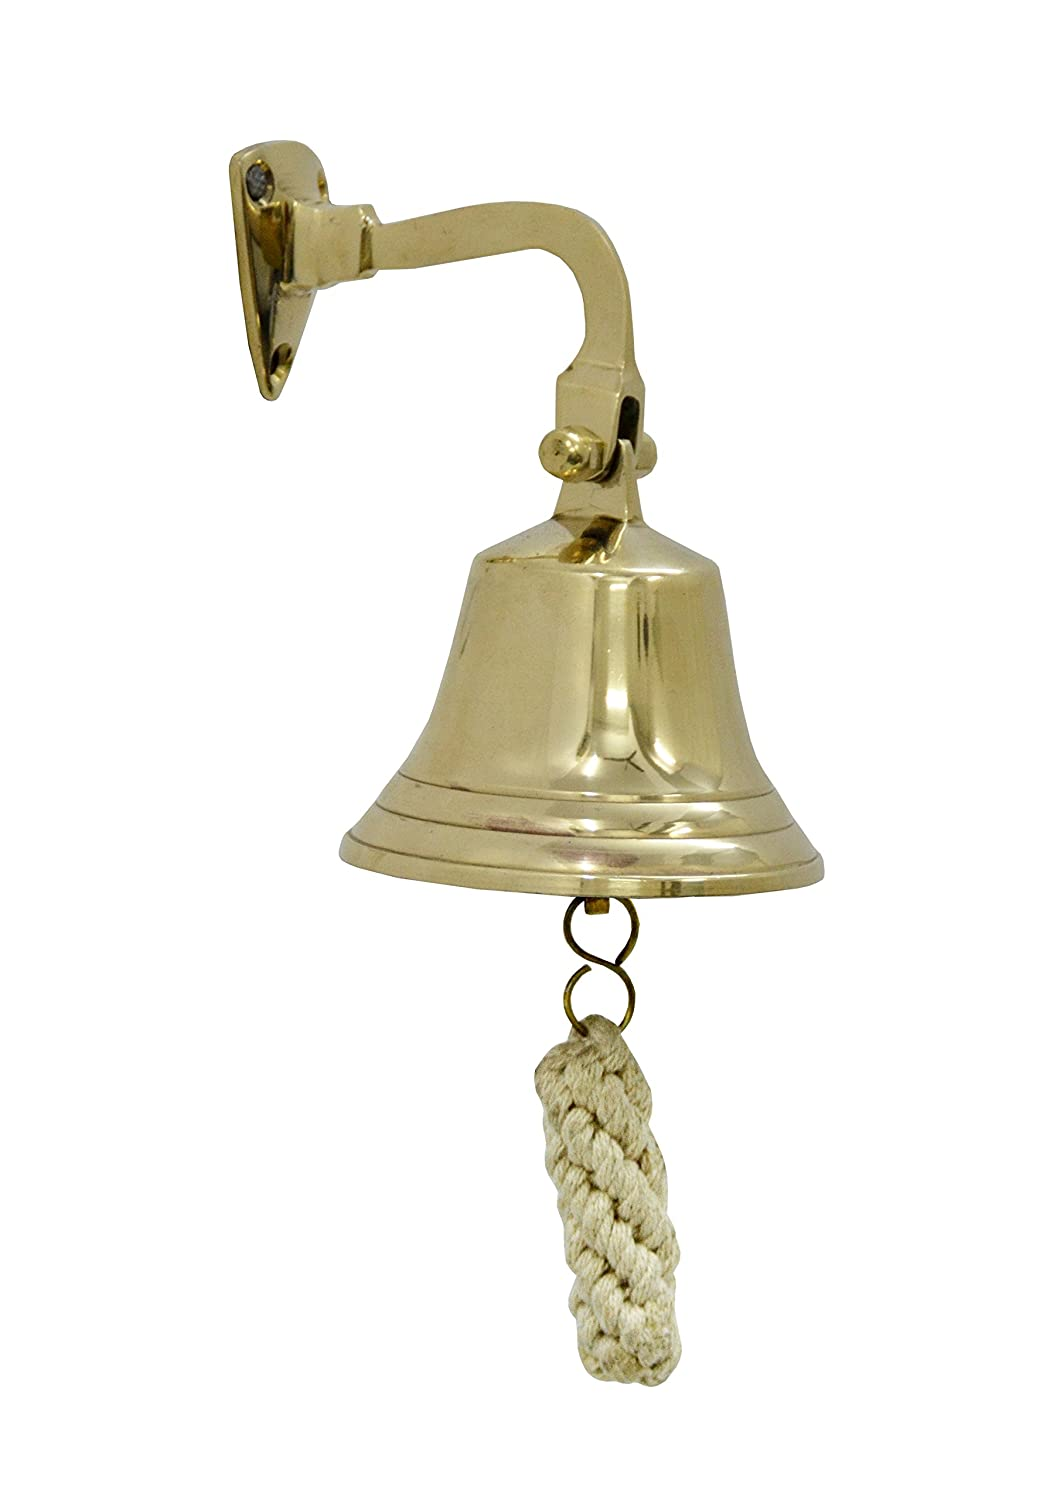 Brass Nautical Brass Ship Bell - Nautical Bells (4 inches) 98061 4in